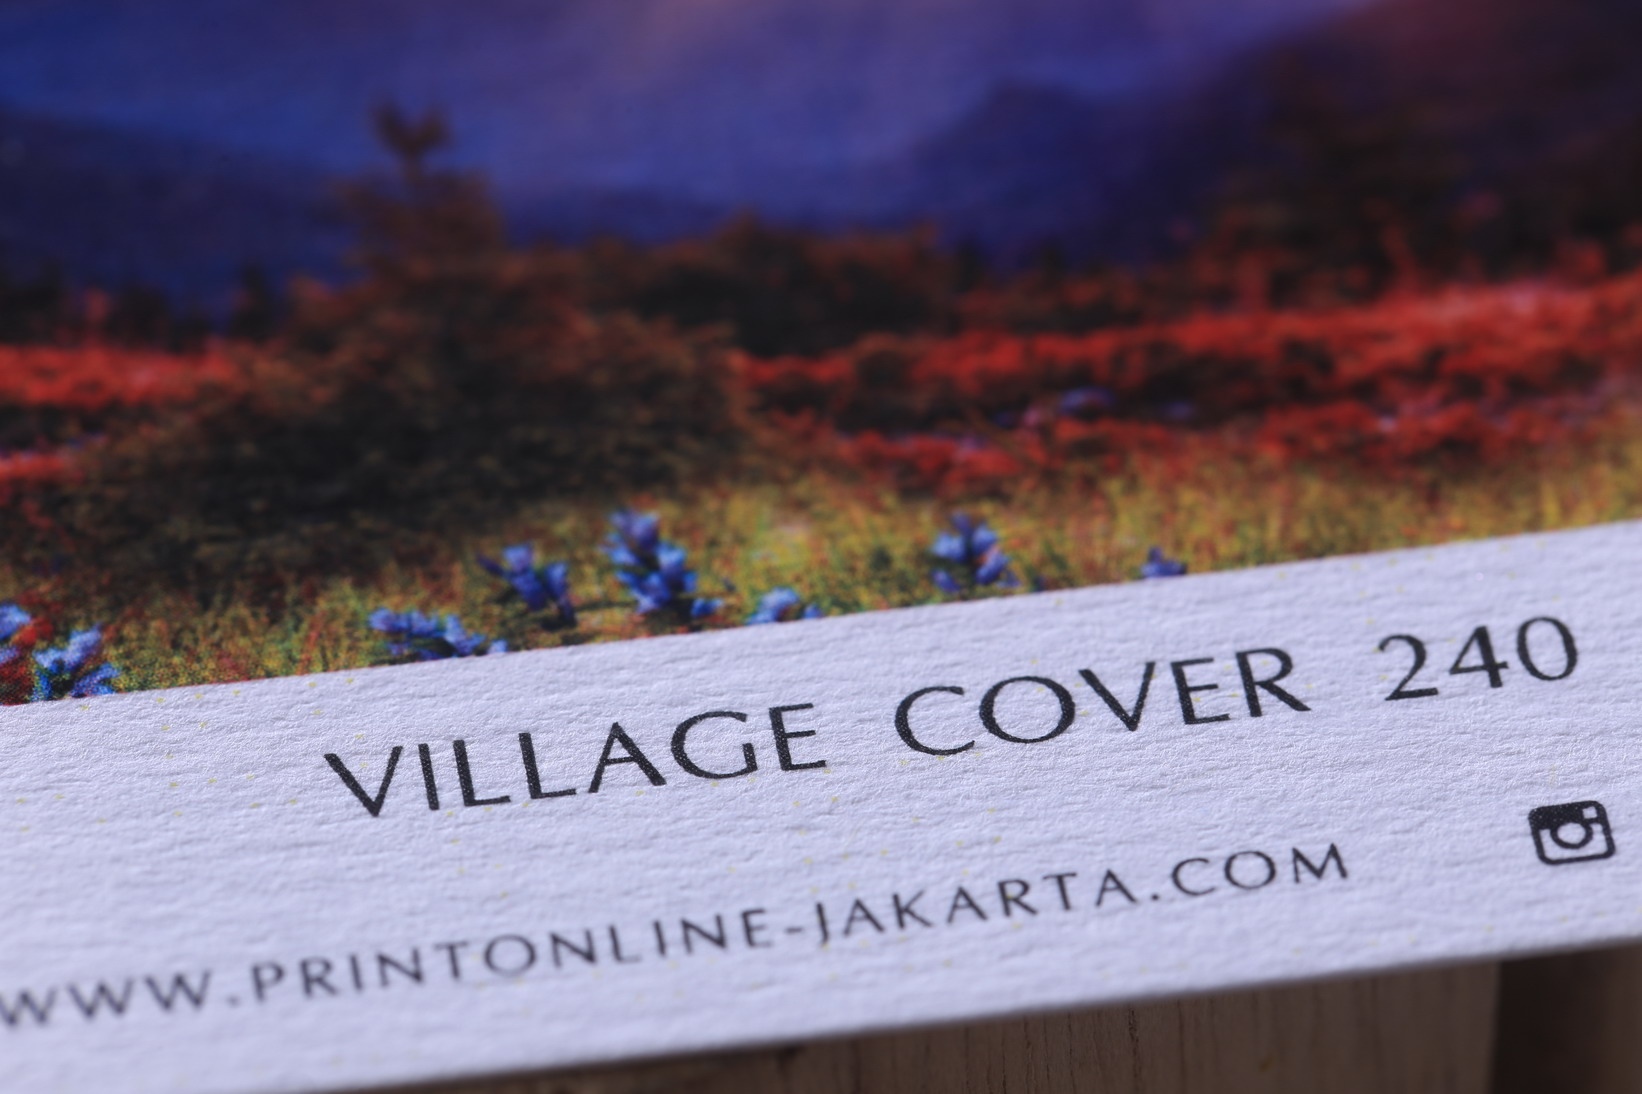 Village Cover 240 grm